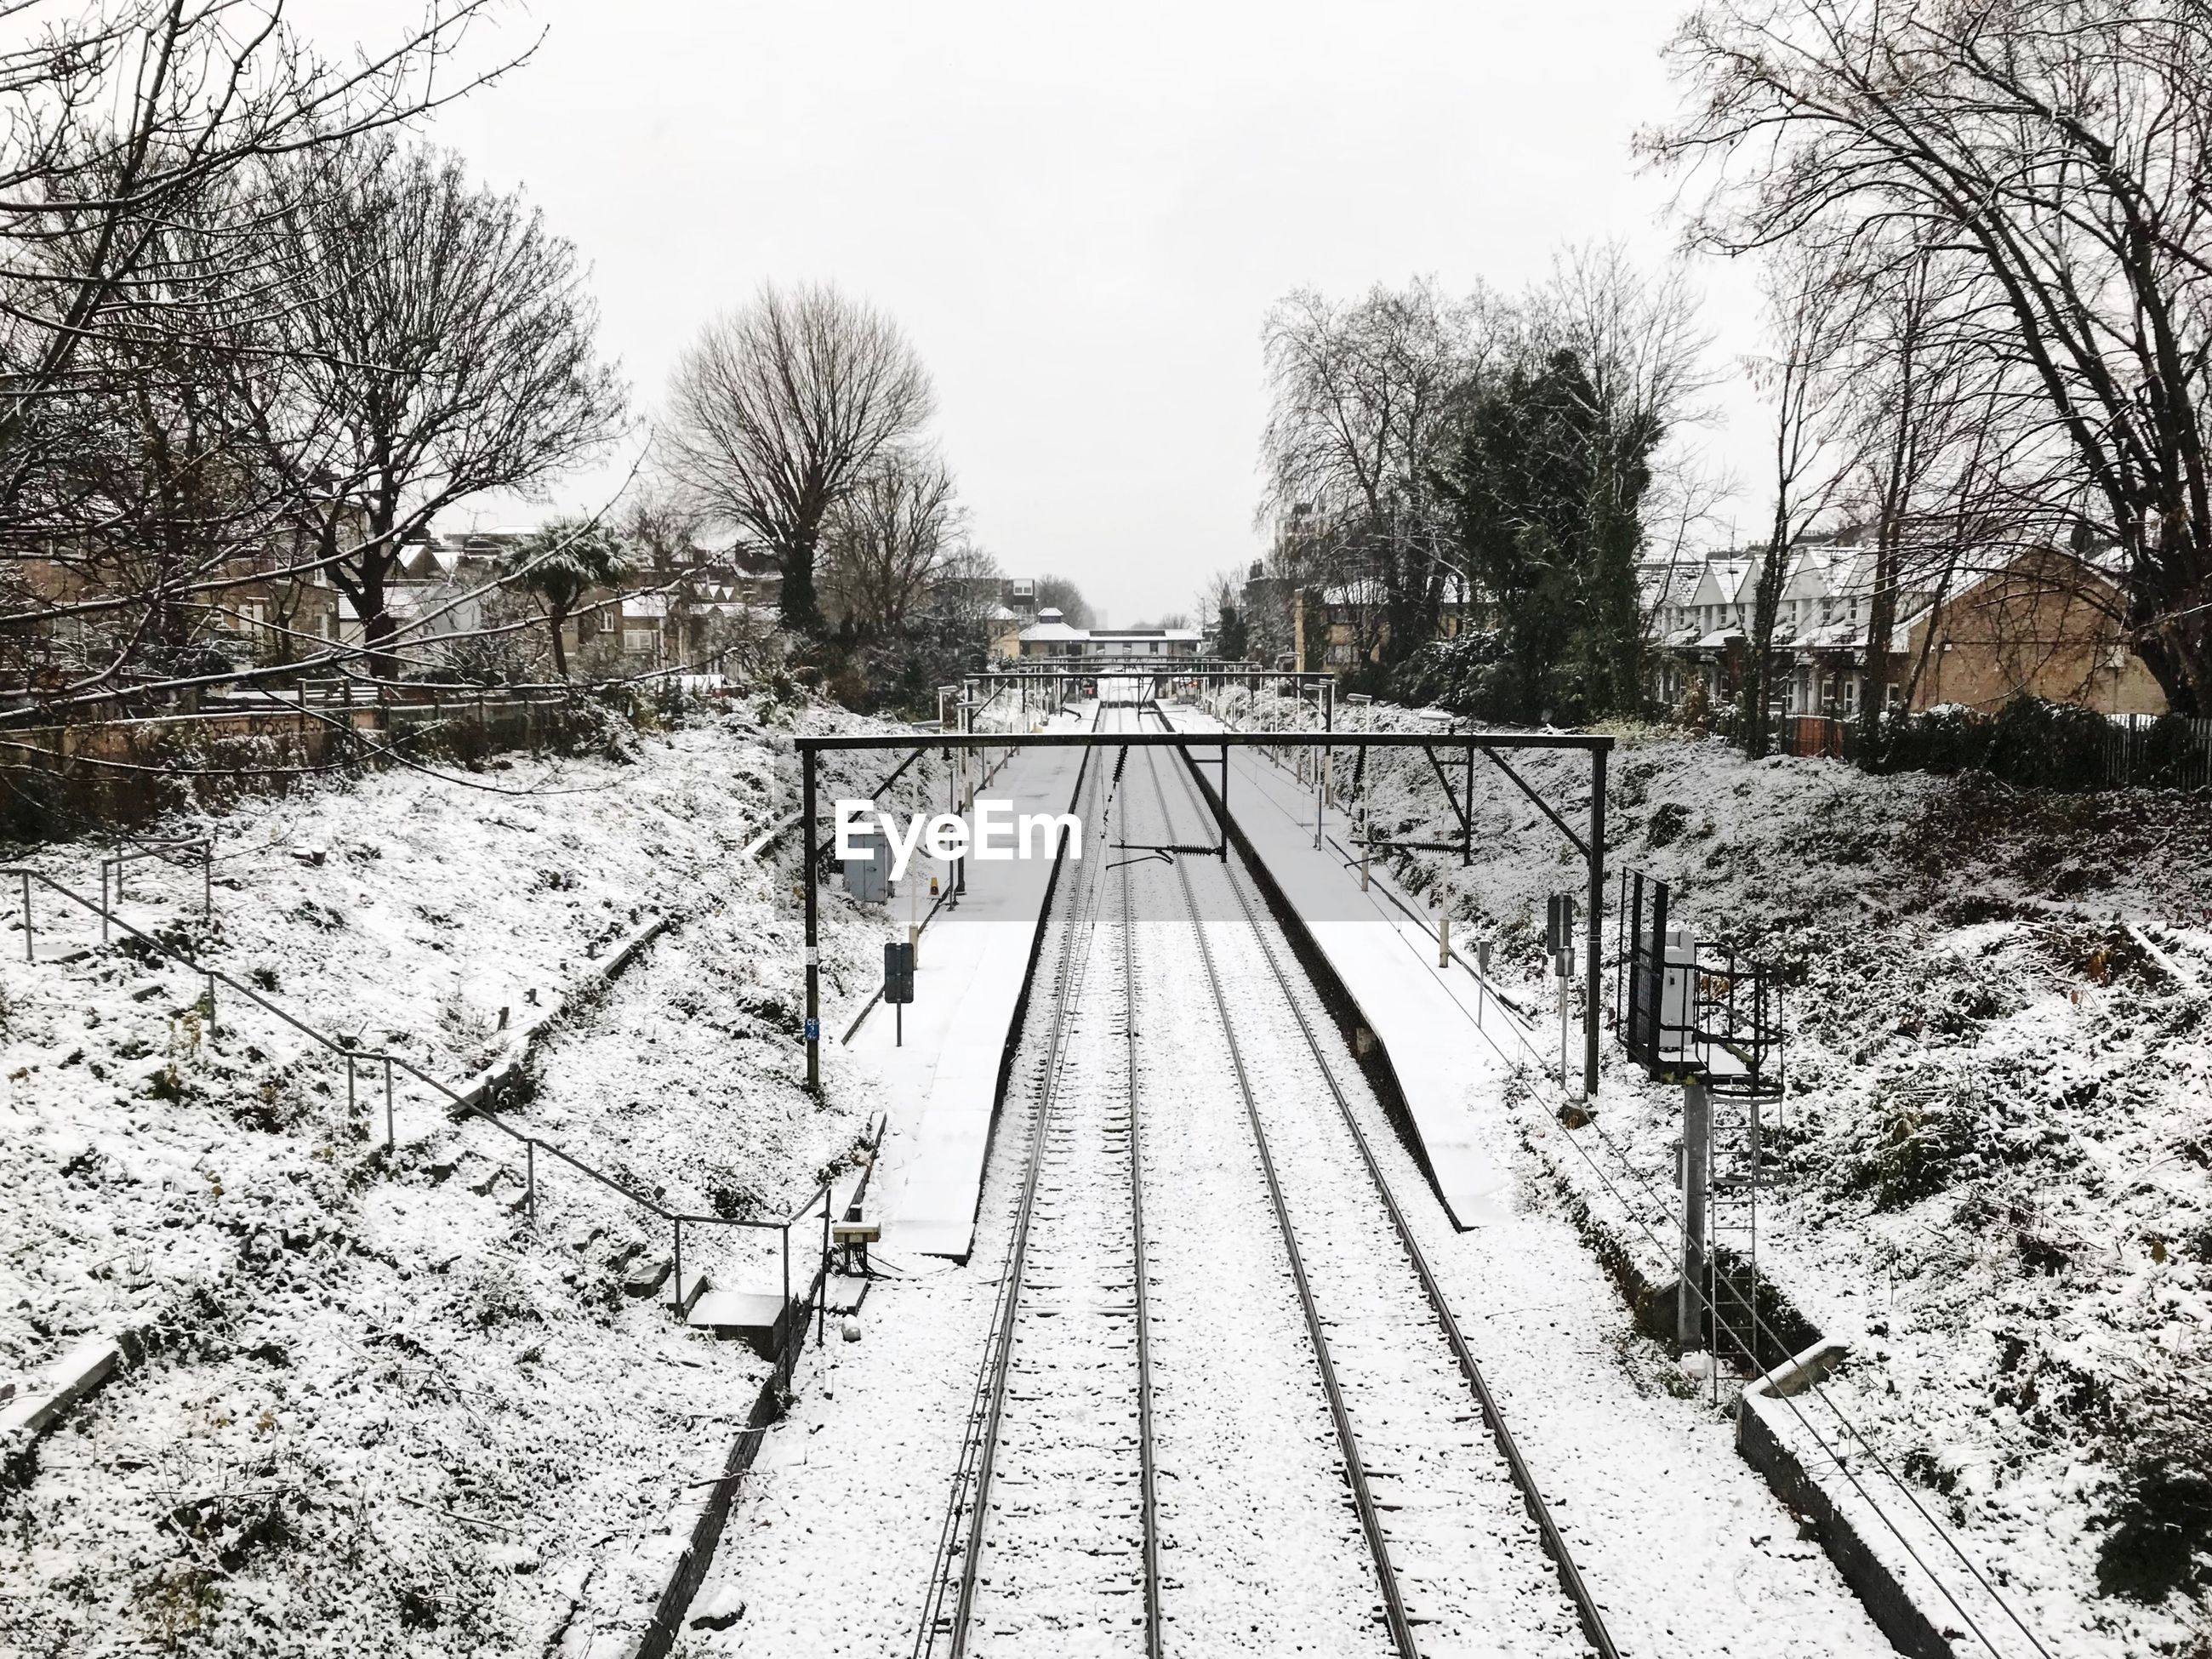 SNOW COVERED RAILROAD TRACKS AGAINST SKY